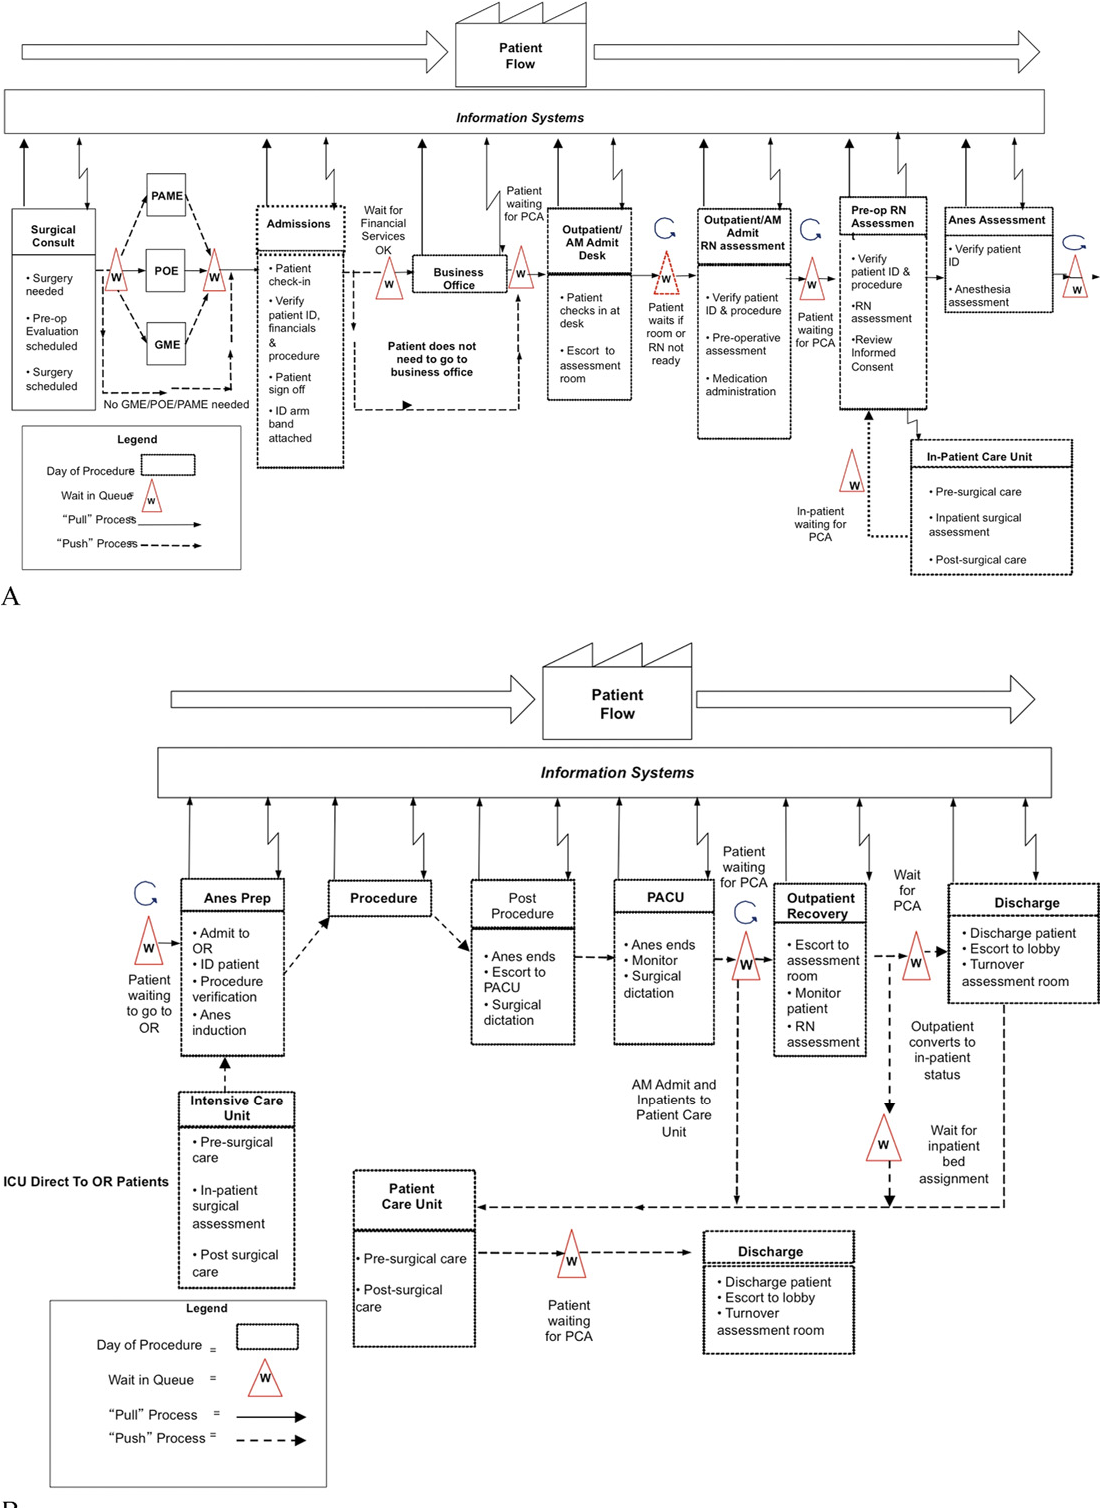 use of lean and six sigma methodology to improve operating room Project Improvement use of lean and six sigma methodology to improve operating room efficiency in a high volume tertiary care academic medical center semantic scholar